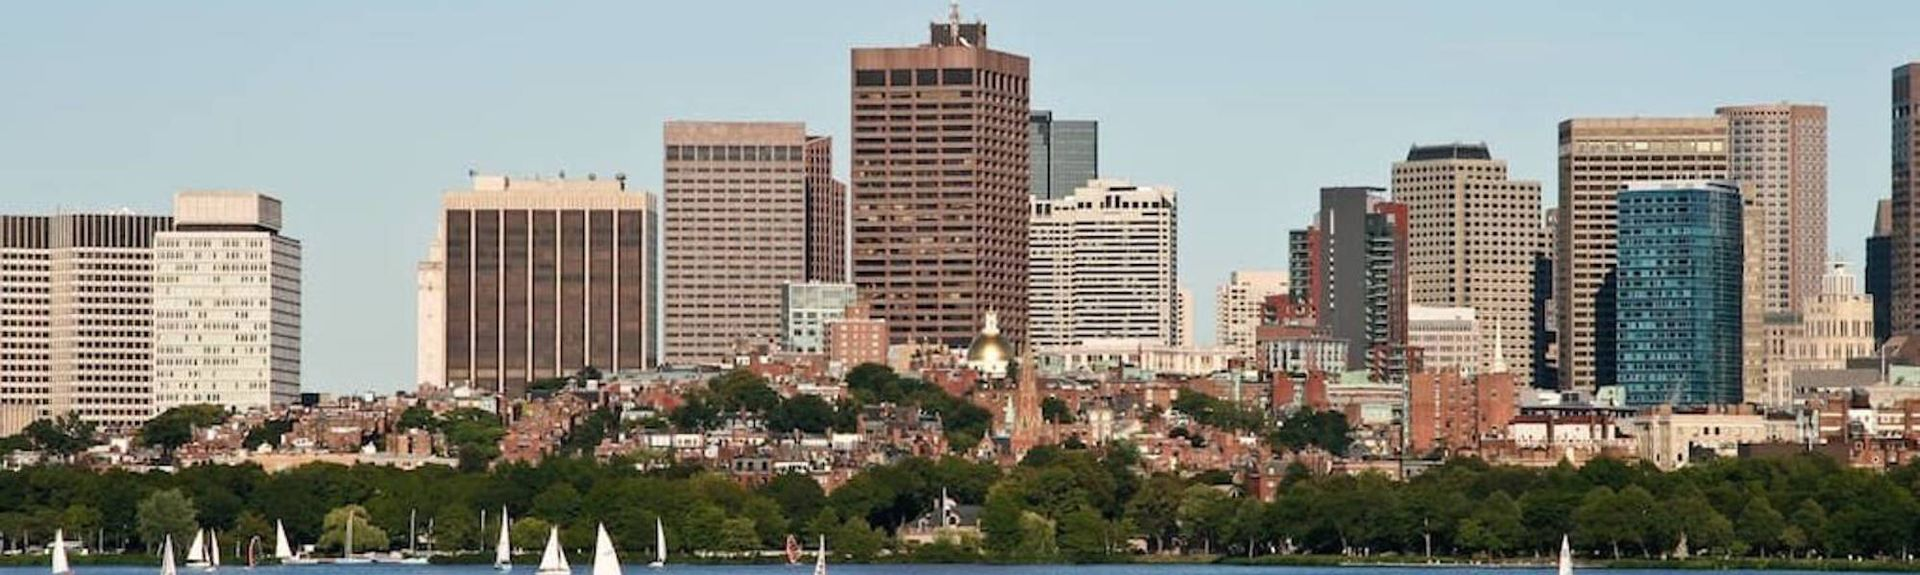 Financial District, The Freedom Trail, Massachusetts, United States